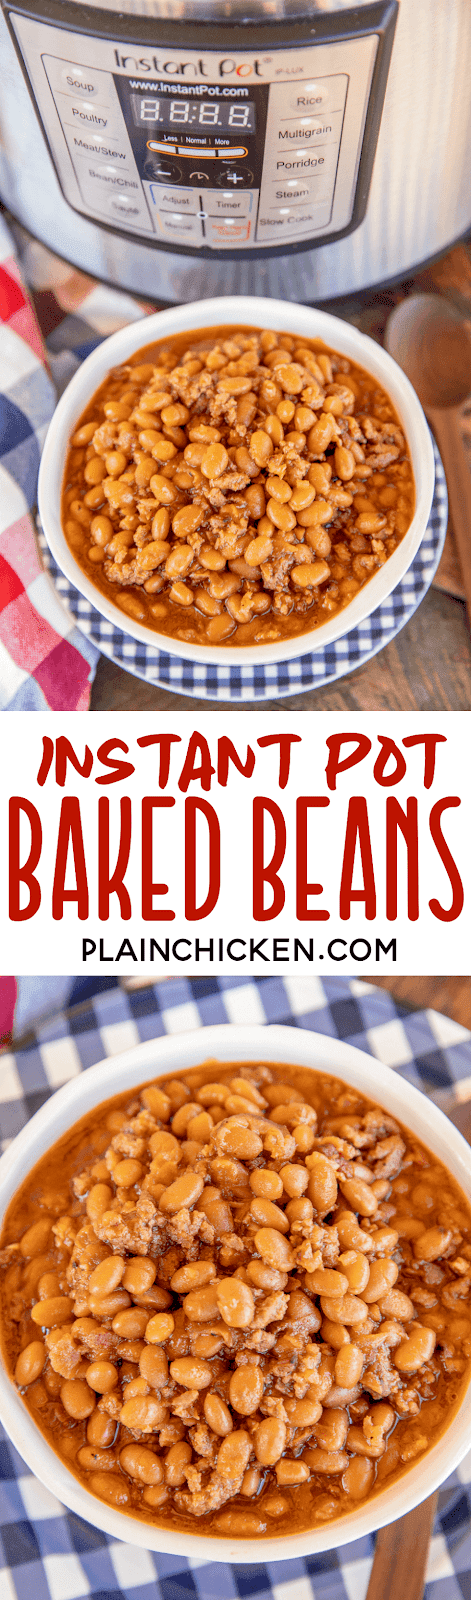 baked beans in a bowl next to an Instant Pot